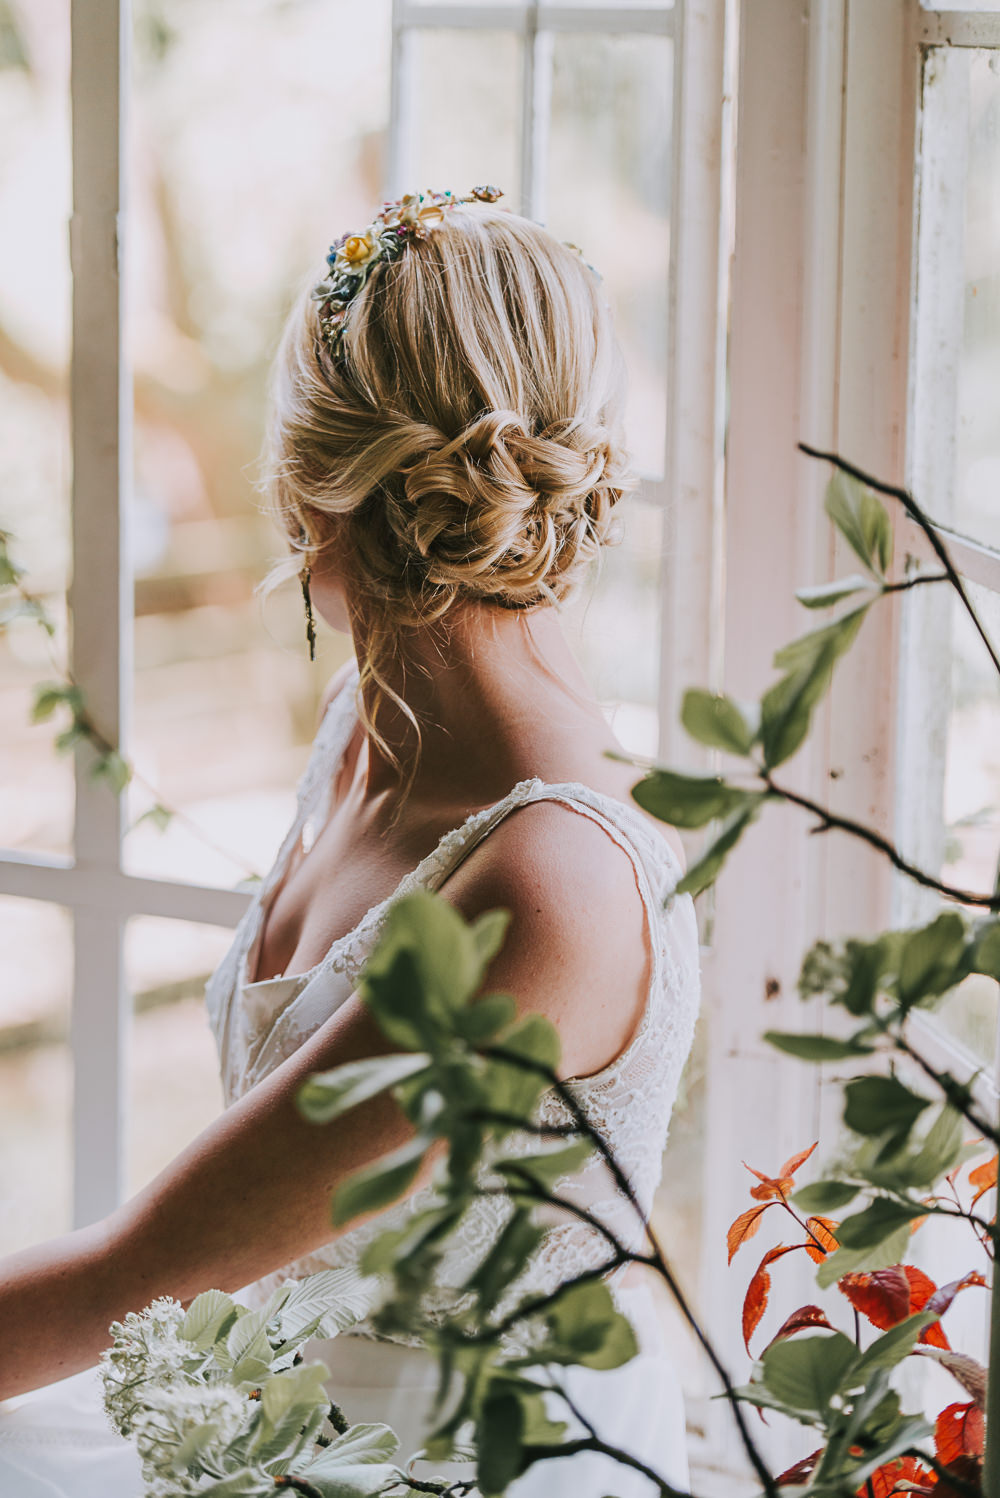 Hair Style Up Do Bride Bridal Plait Hairpiece Floral River Romance Wedding Ideas Mindy Coe Photography